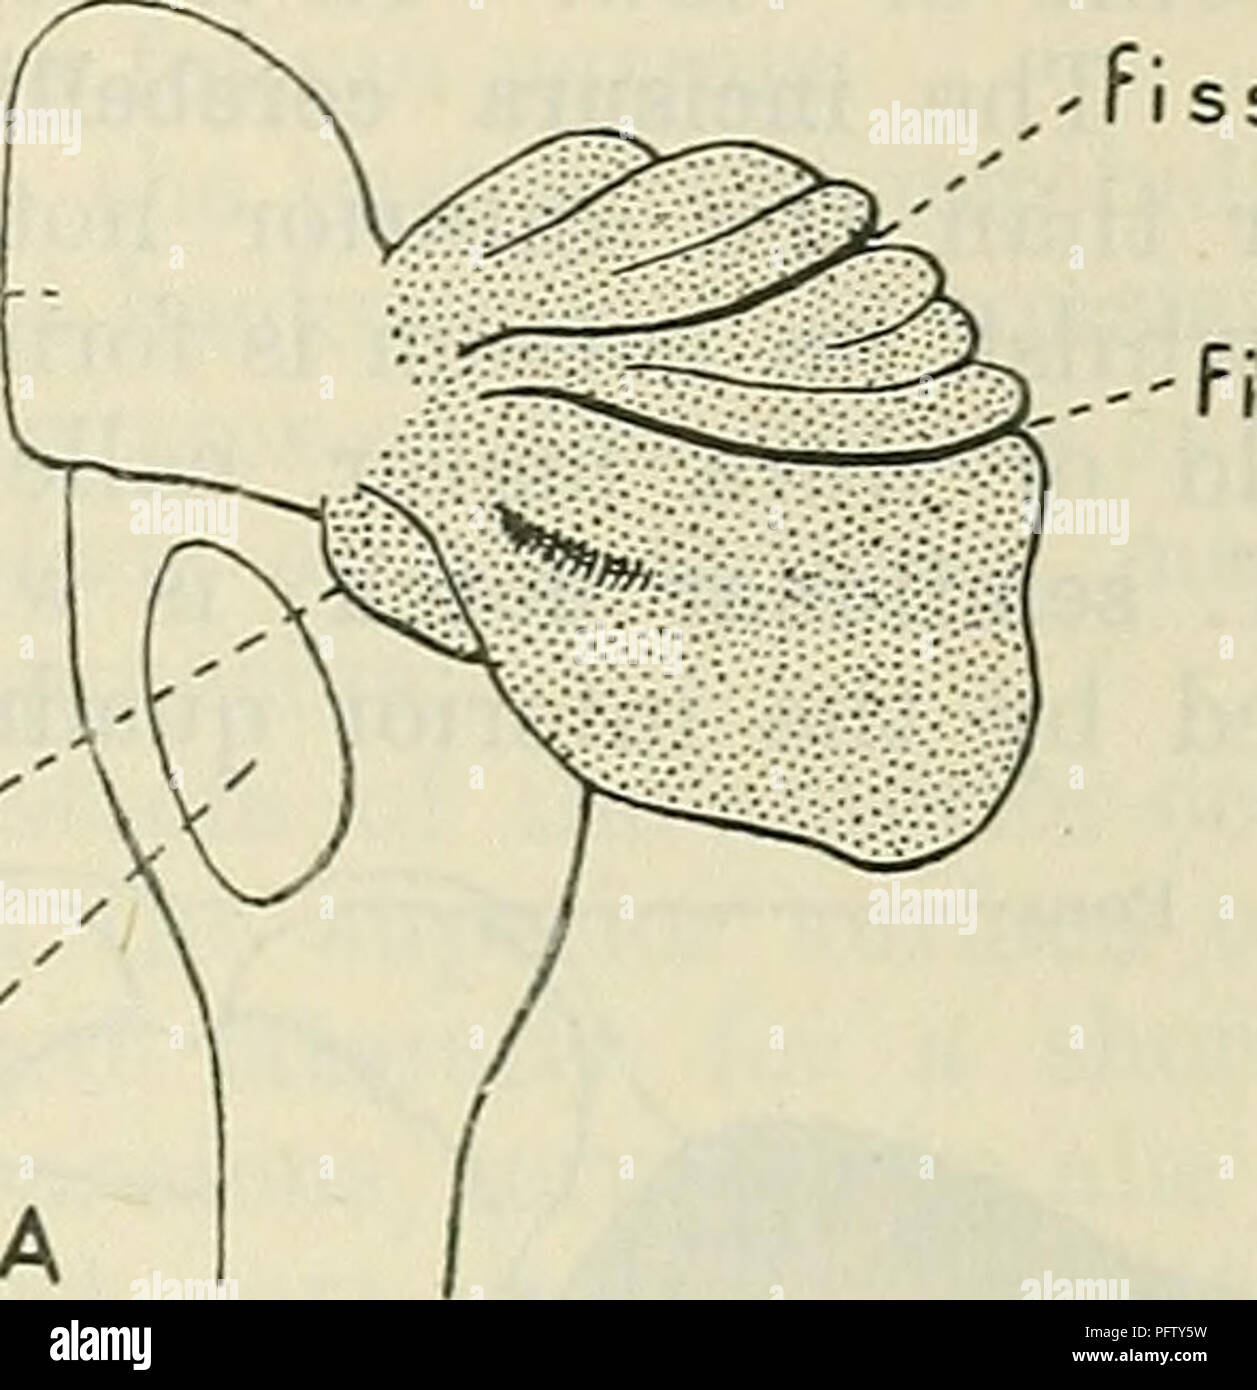 . Cunningham's Text-book of anatomy. Anatomy. THE CEEEBELLUM. 573 Pons. i ss. prima ss. postlunarfs jf floor of fissura horizon talis There is no justification for such a subdivision, nor is any useful purpose served by linking together two parts so distinct, morphologically and physiologically, as the culmen and declive and calling the complex monticulus. Only some of the fissures of the vermis become prolonged laterally beyond the limits of the vermis, but as the boss-like lateral lobes begin to expand their surface becomes folded and a series of independent lateral fissures are formed. [The - Stock Image